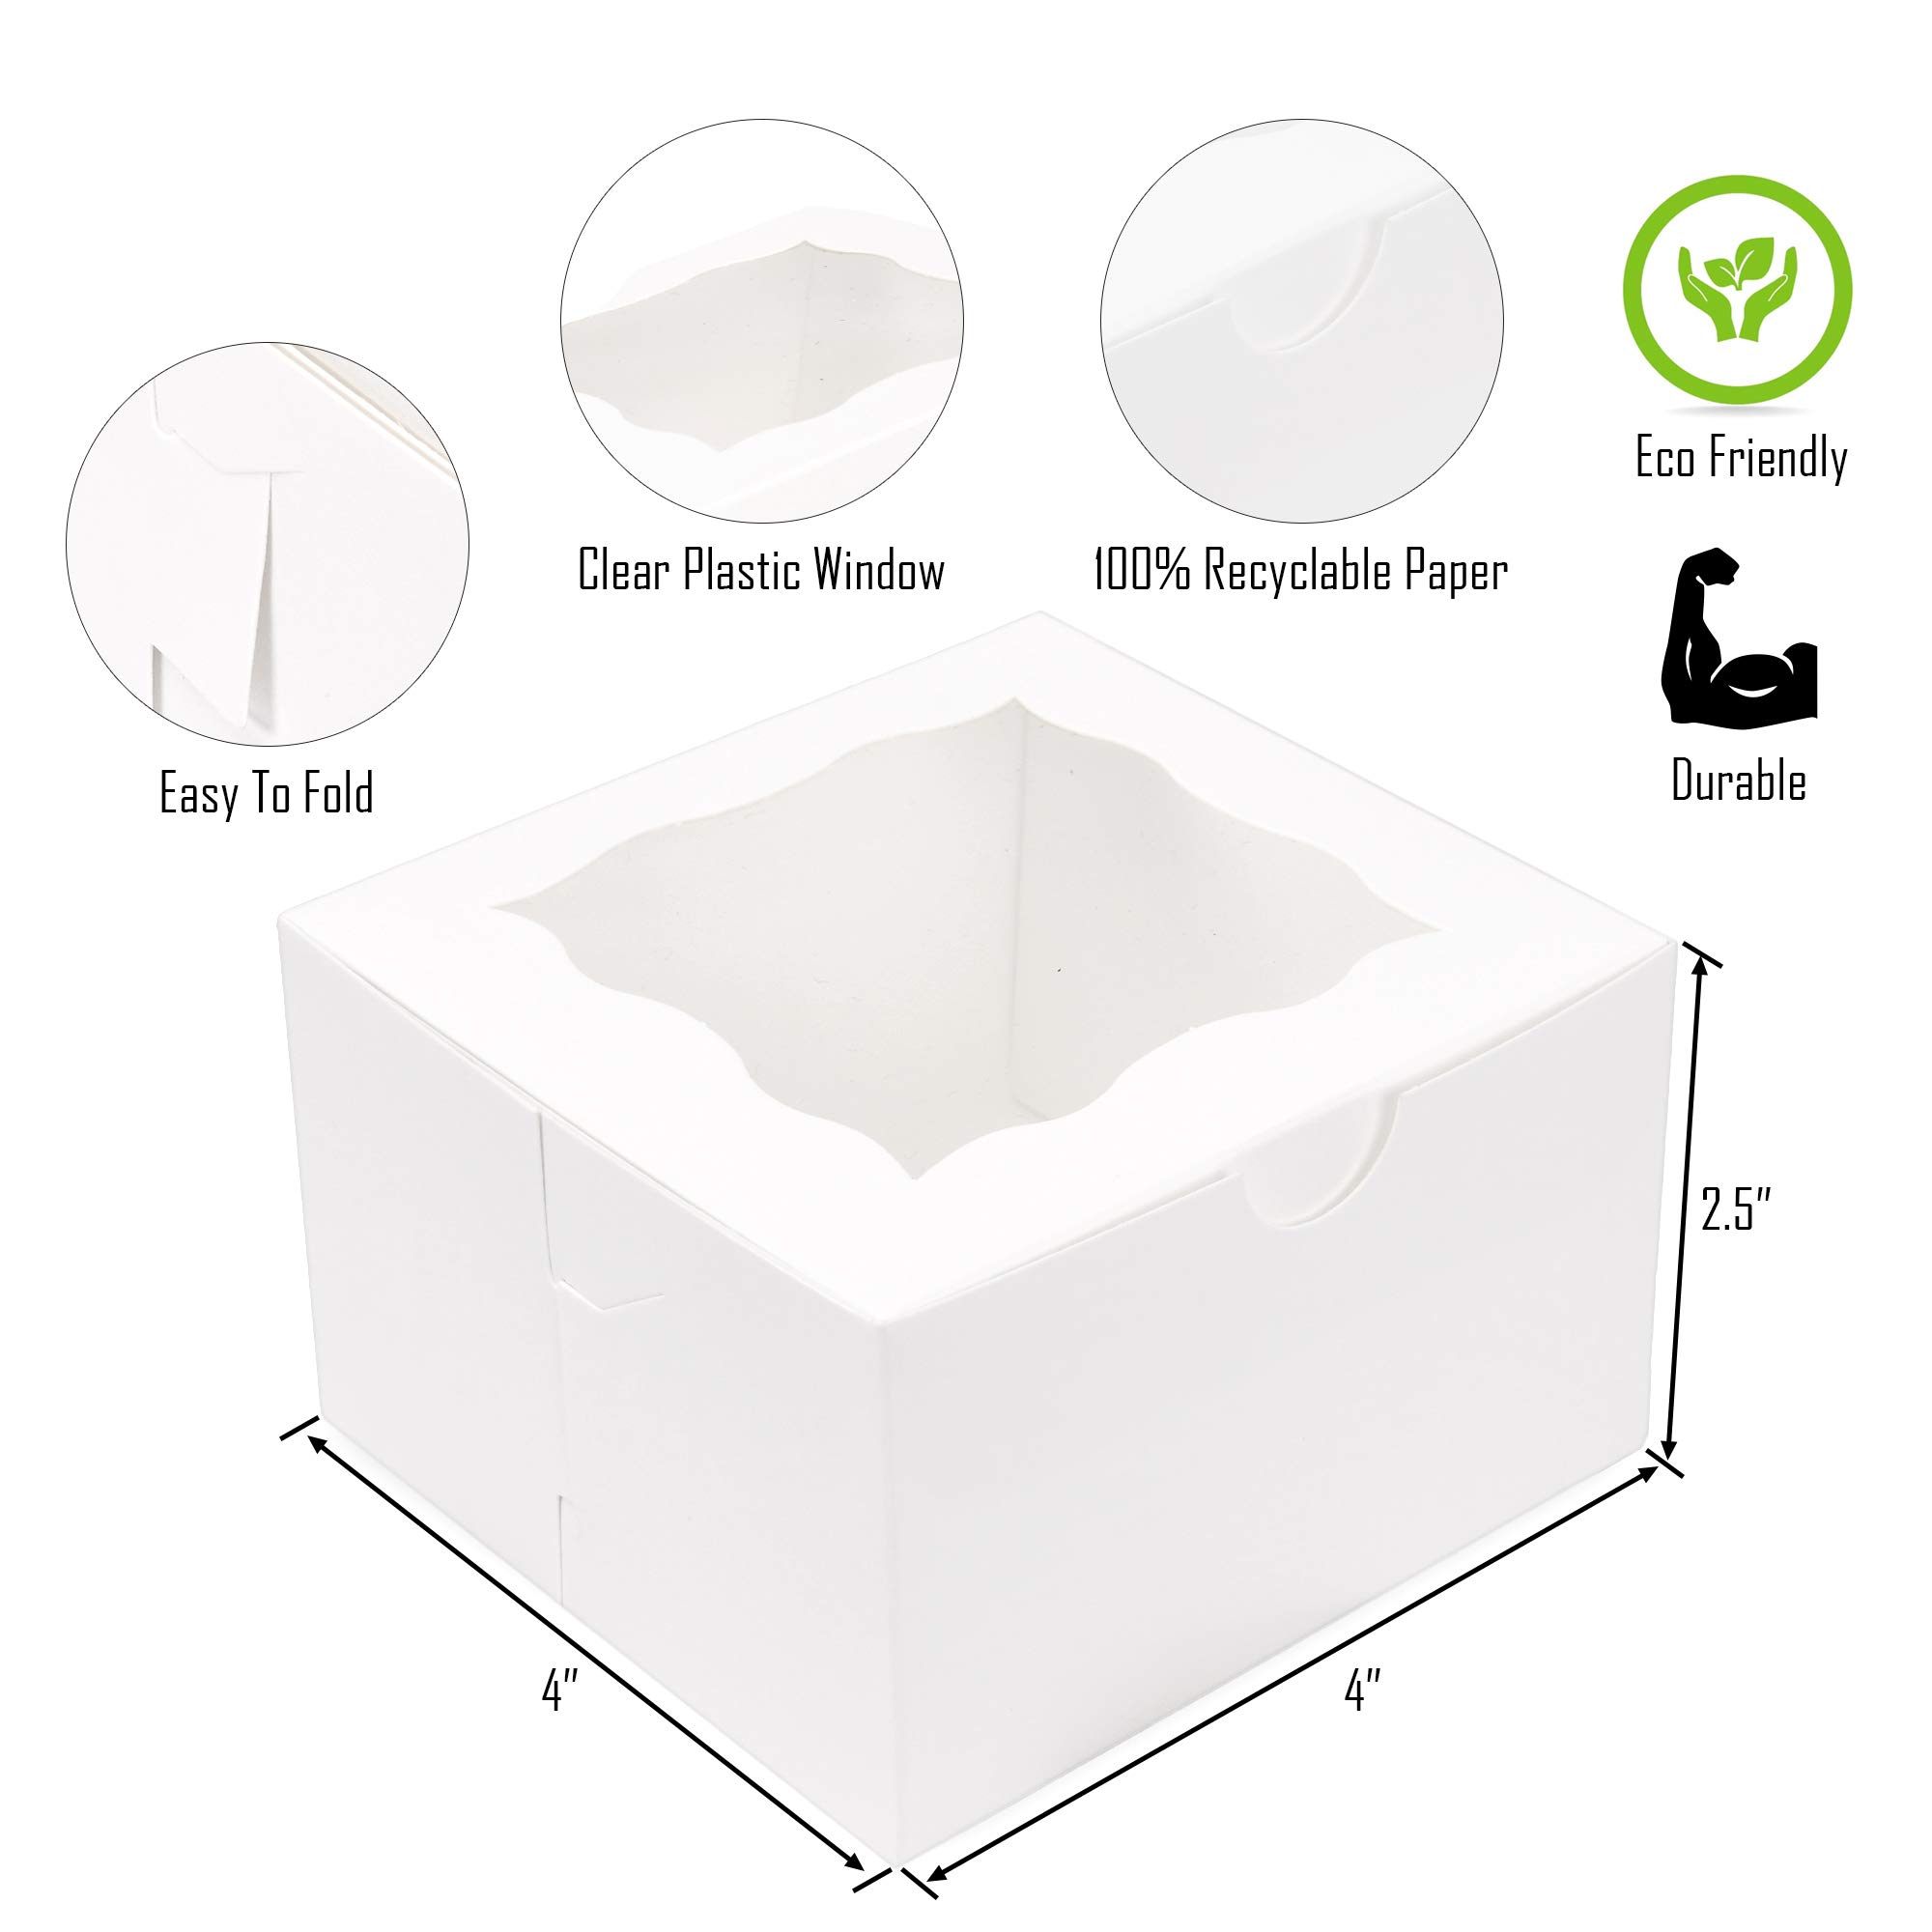 {Pack of 50} White Bakery Boxes with Window 4x4x2.5'' Cute Cardboard Gift Packaging Containers for Cookies, Cupcakes, Small Desserts, Pastry, Wedding Cake, Baby Showers, Donuts, Treats, Party Favors! by Surf City Supplies (Image #2)